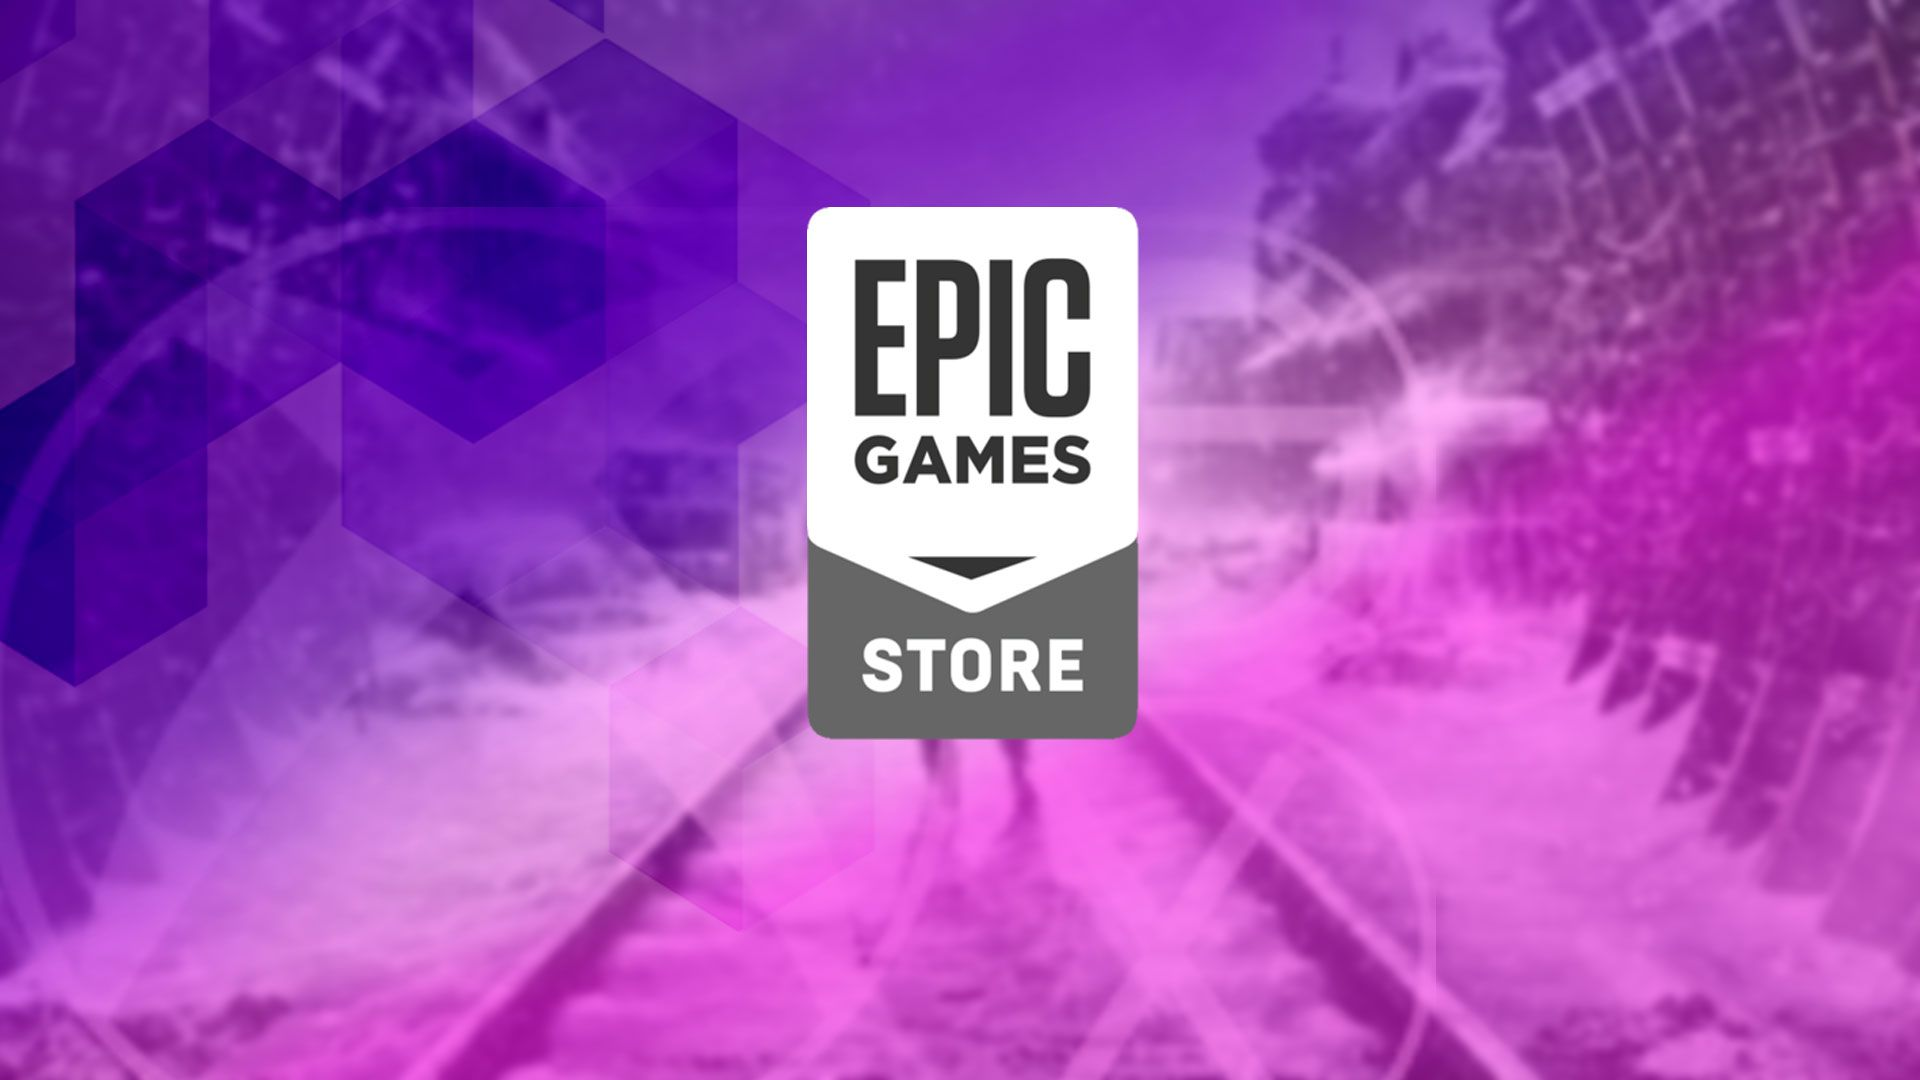 Epic Games Store S Free Games Game Store Epic Games Play Game Online